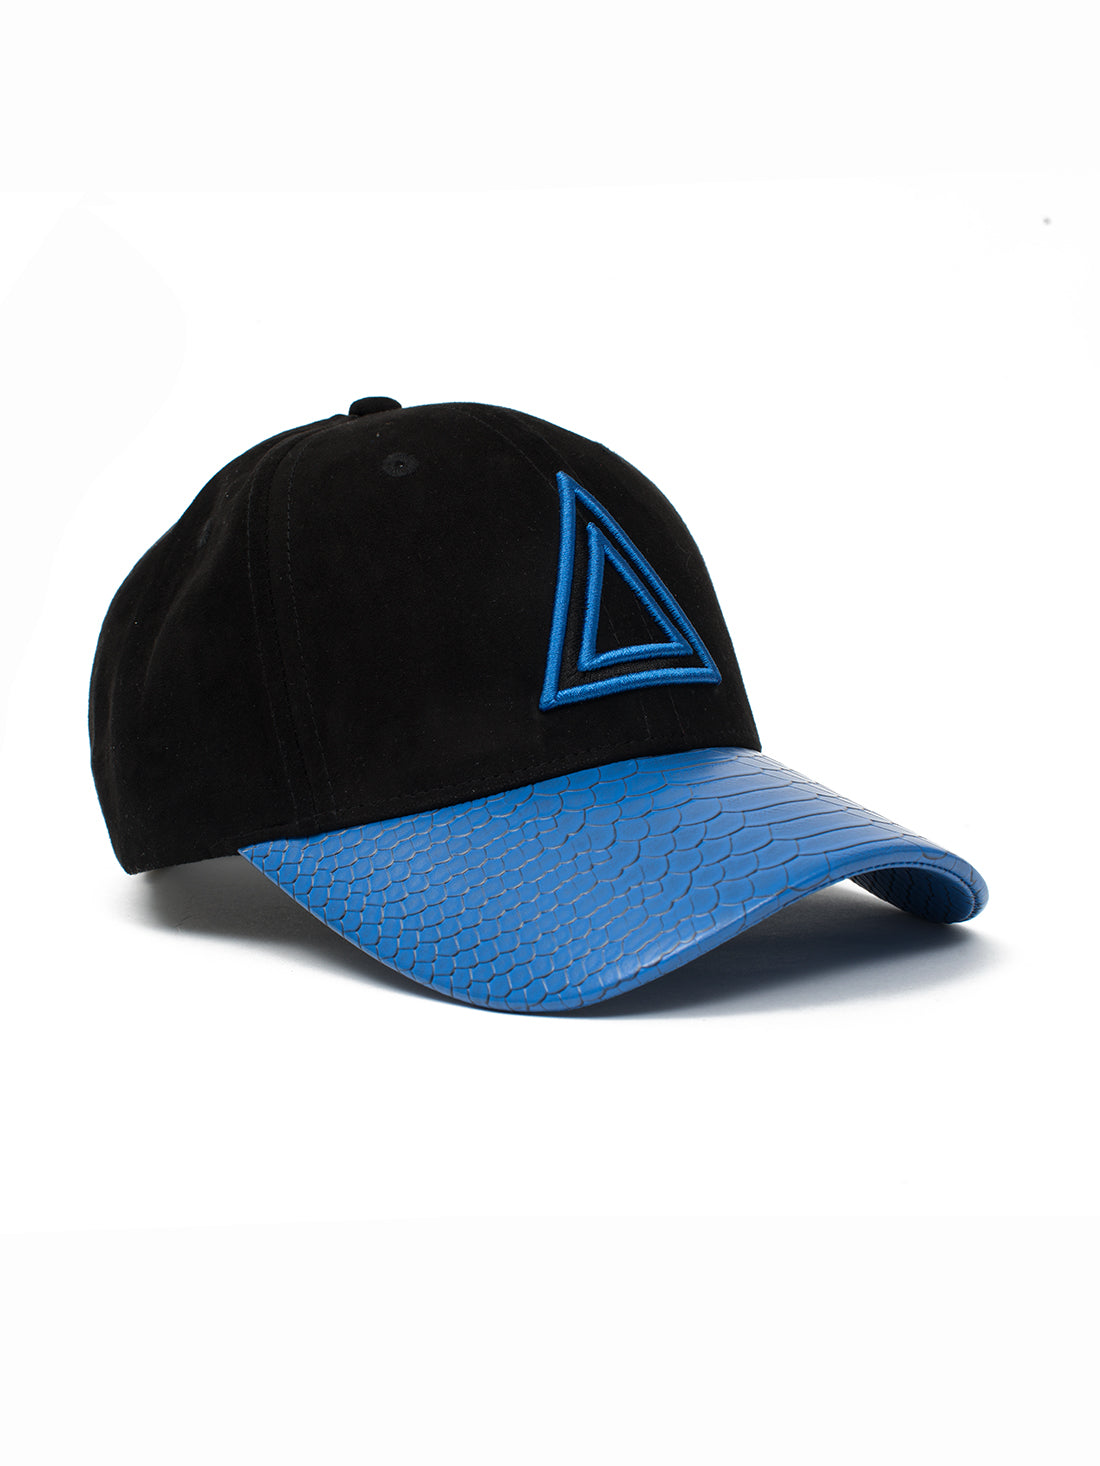 Blue Snakeskin Dad hat